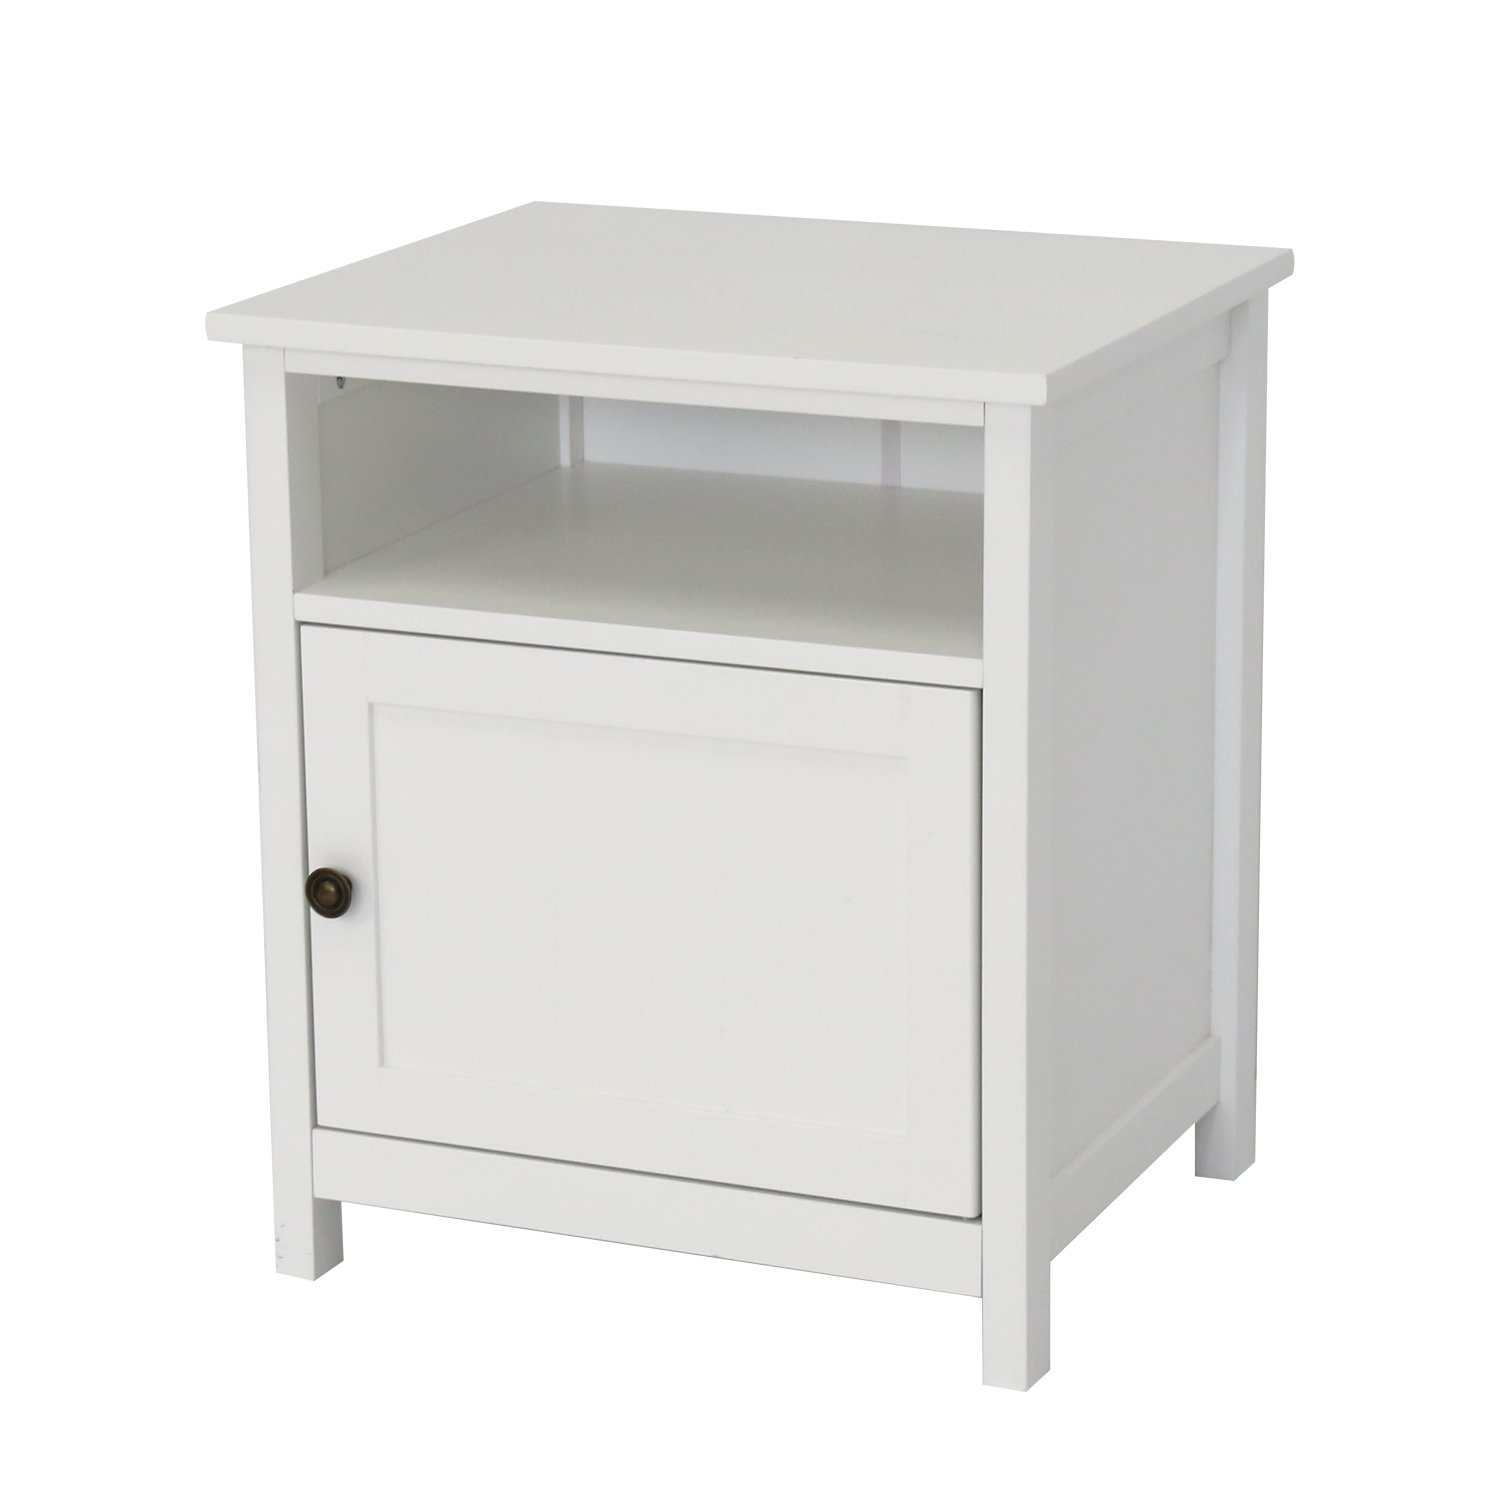 Peach Tree Single Door Floor Big Storage Space Bedroom Night Stand Table Cabinet(White)